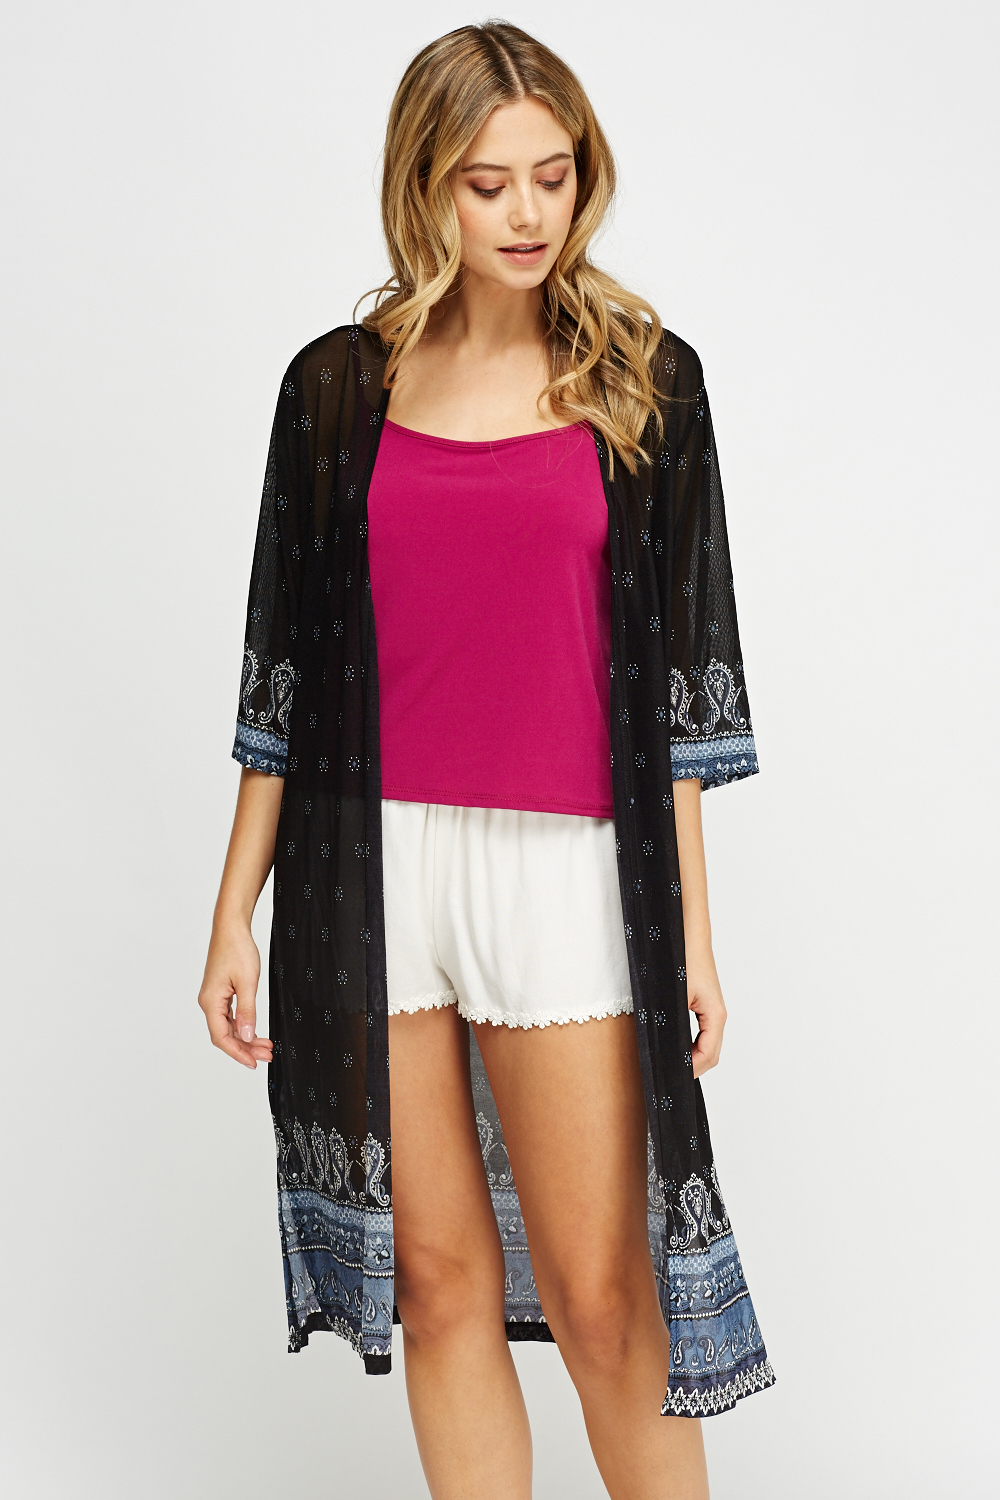 4b87ebc189 Sheer Printed Longline Cover Up - Just £5